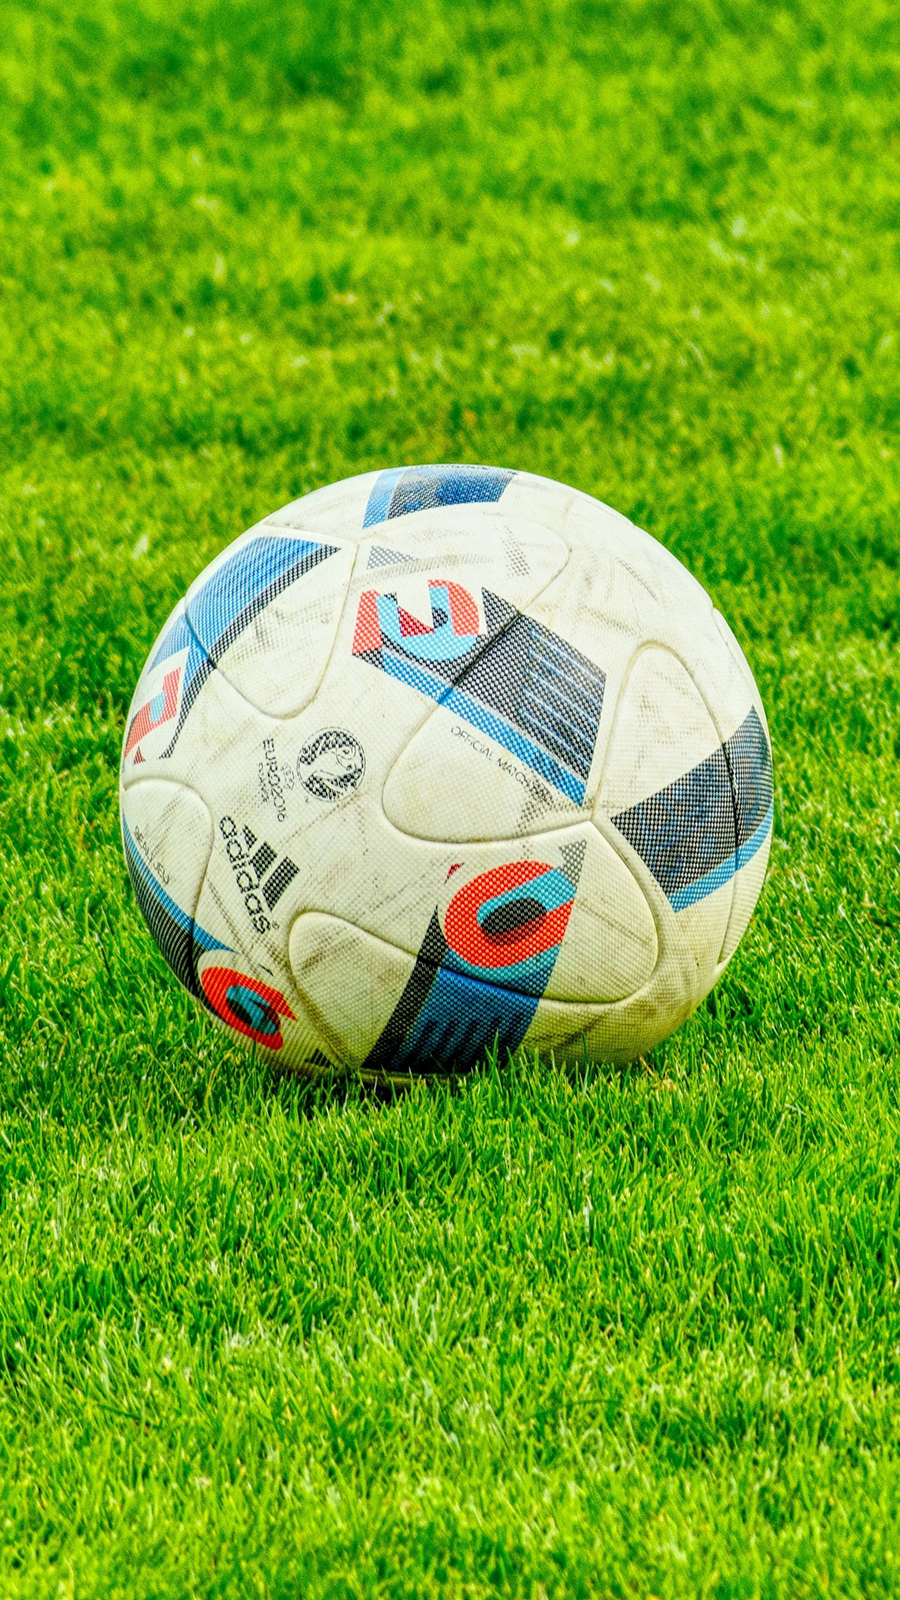 Football Lawn Grass Wallpapers Free Download